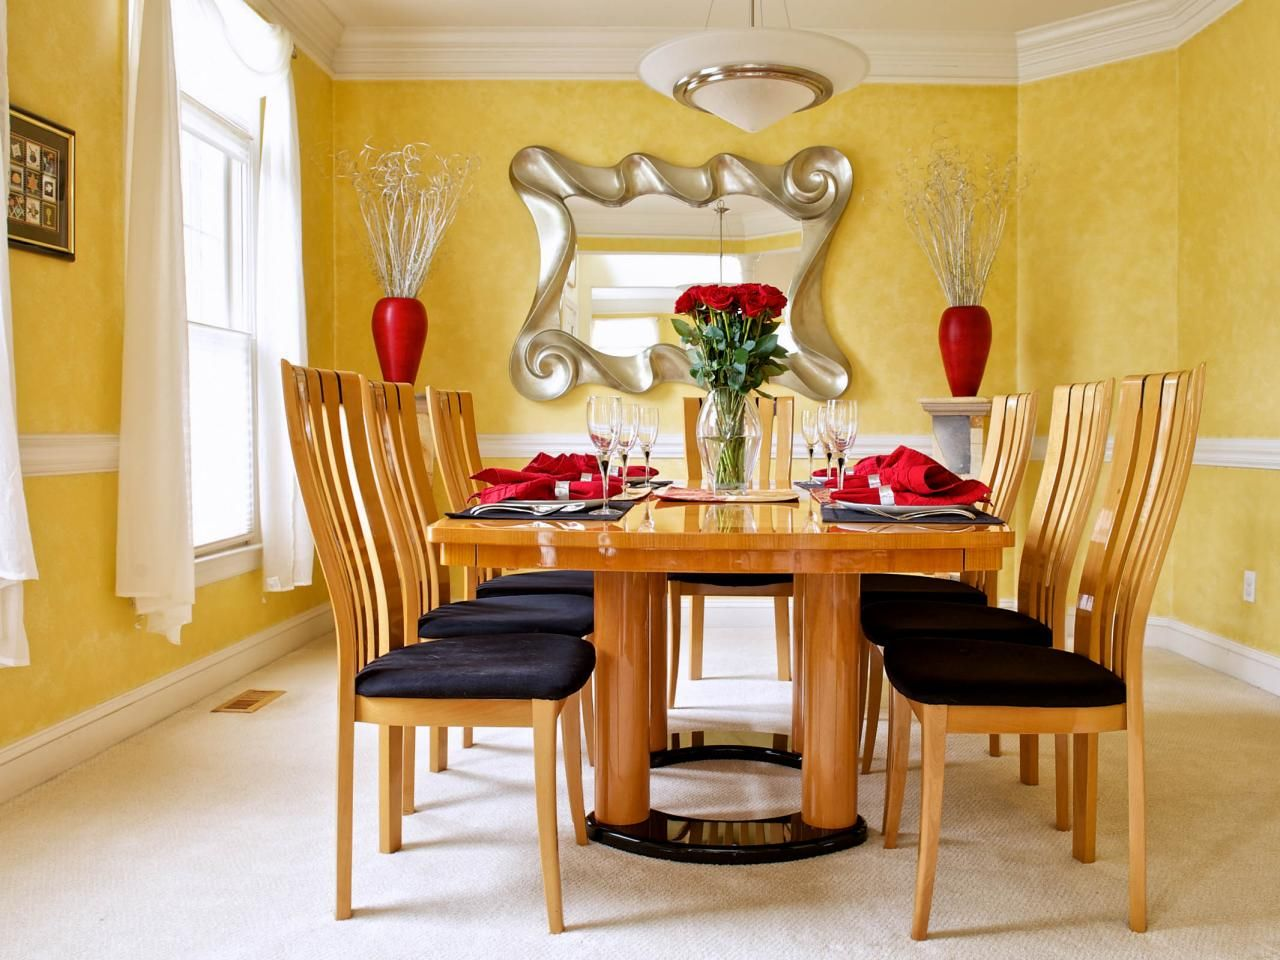 Cool Contemporary Bachelor Pad Yellow Dining RoomDining